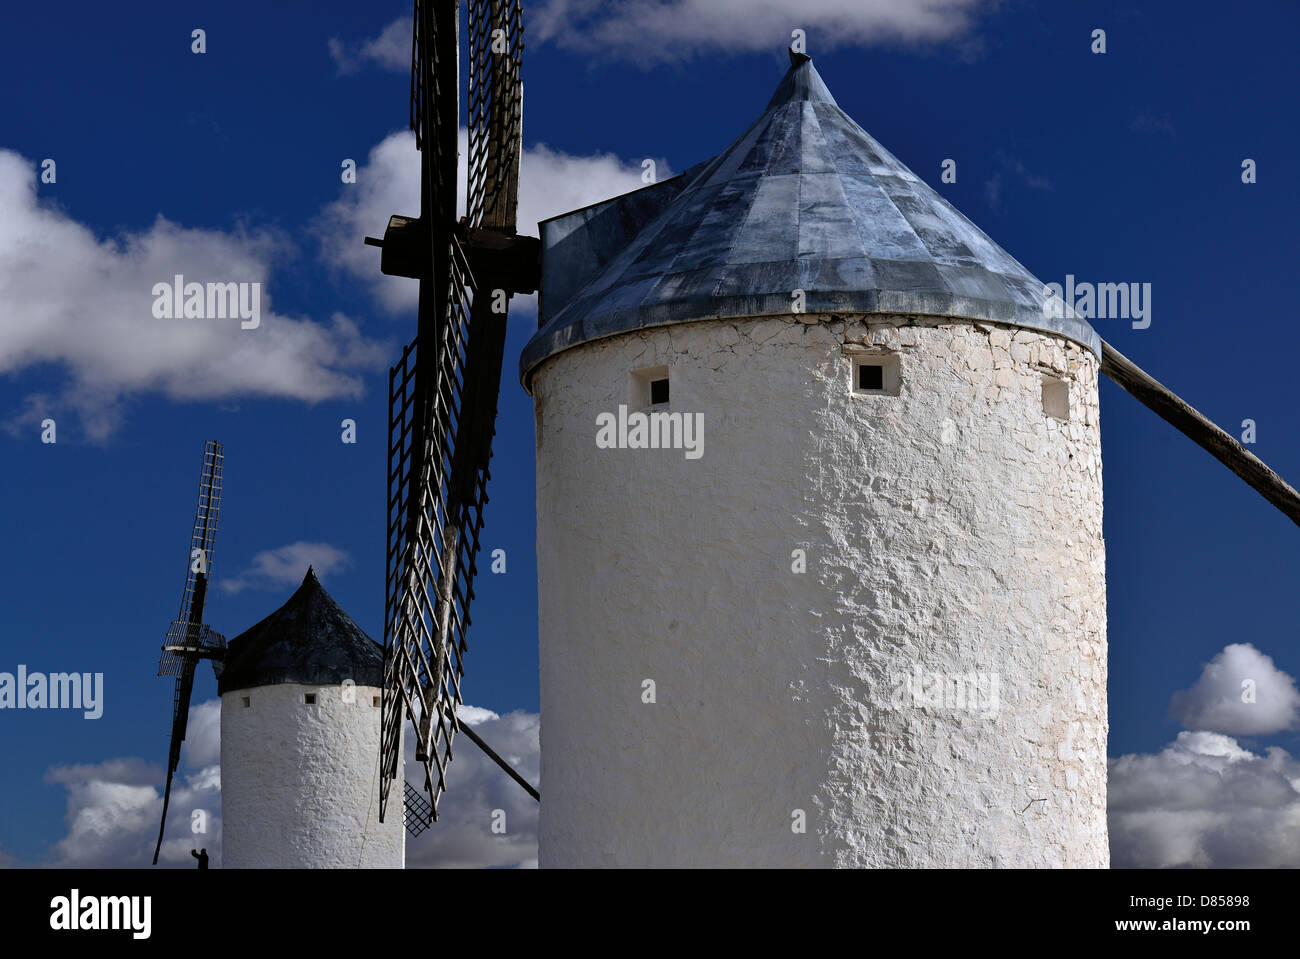 Spain, Castilla-La Mancha: Detail of two windmills of Consuegra - Stock Image